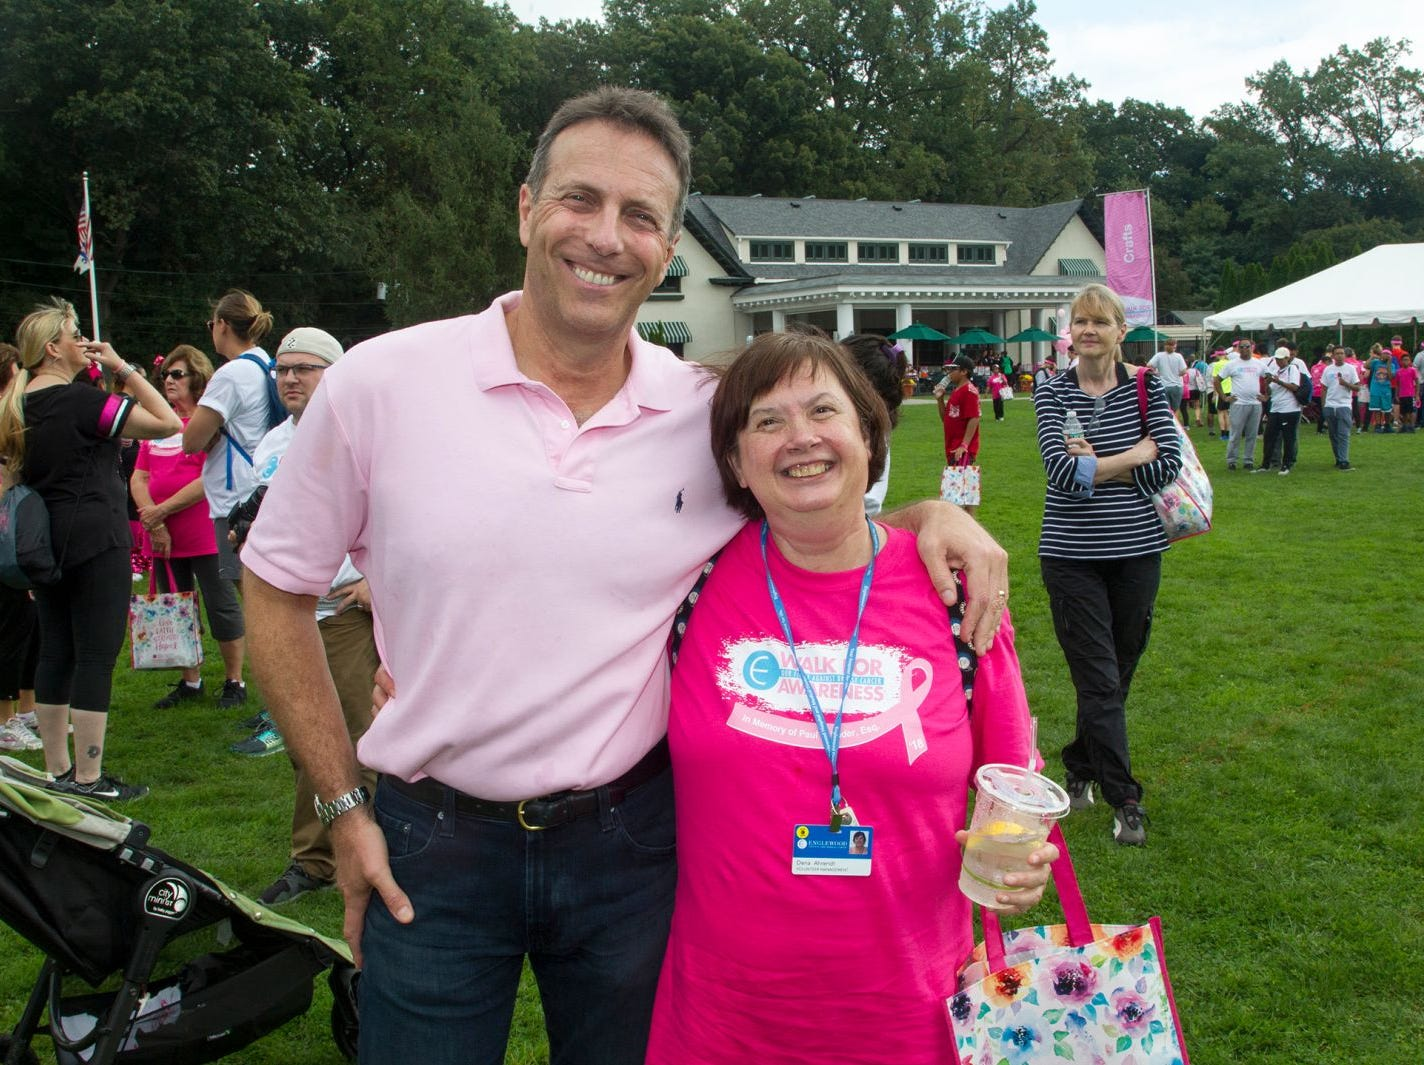 Jay Nadel and Dena Ahrendt. Englewood Health Foundation hosted its 2018 Walk for Awareness and Susan Lucianna Memorial Dog Walk dedicated in memory of Walk for Awareness co-founder Paul Fader, Esq. 10/07/2018